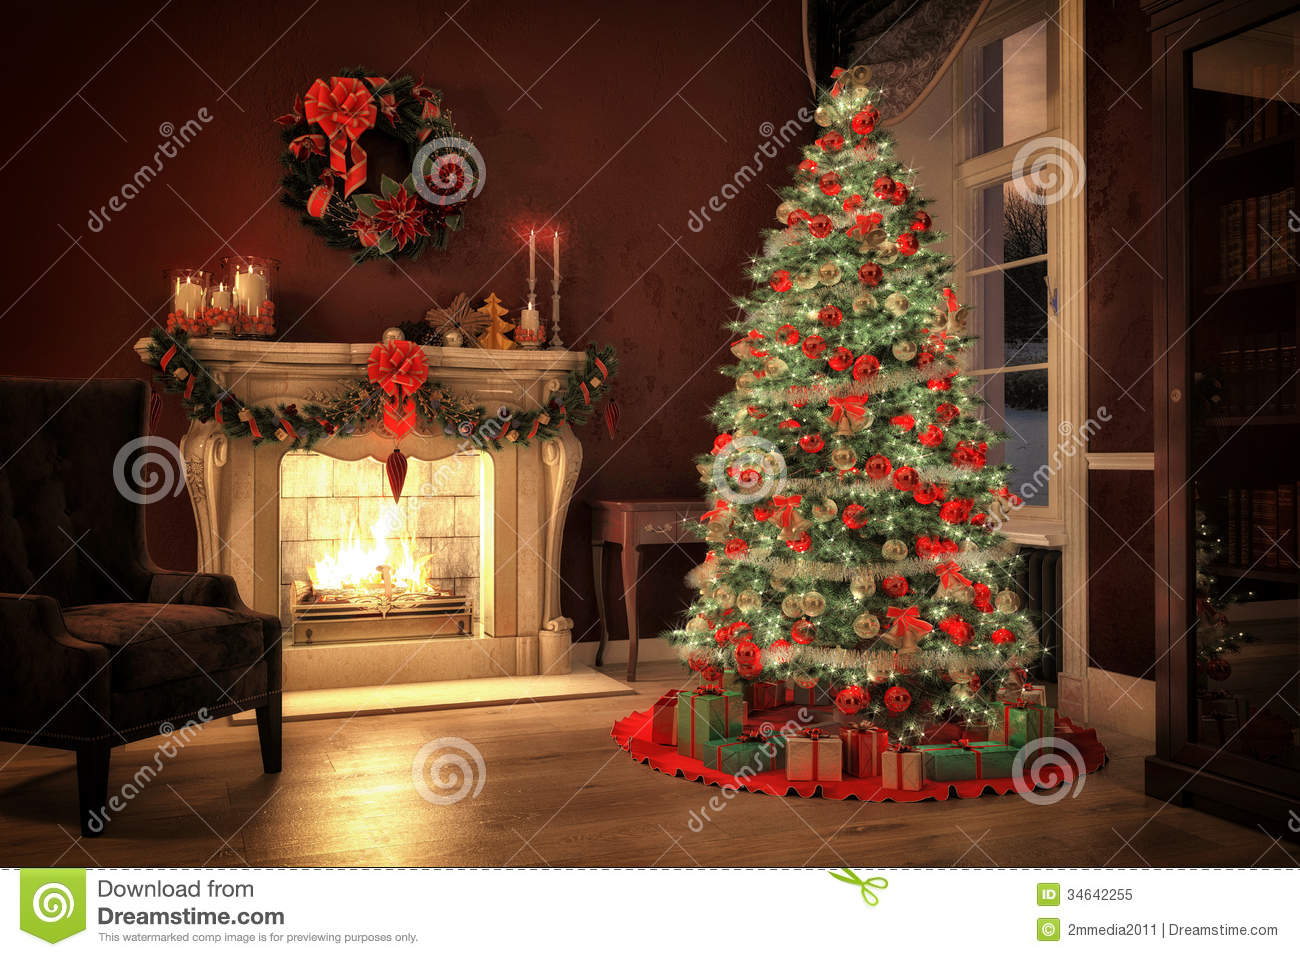 Christmas Time Royalty Free Stock Photo Image 34642255